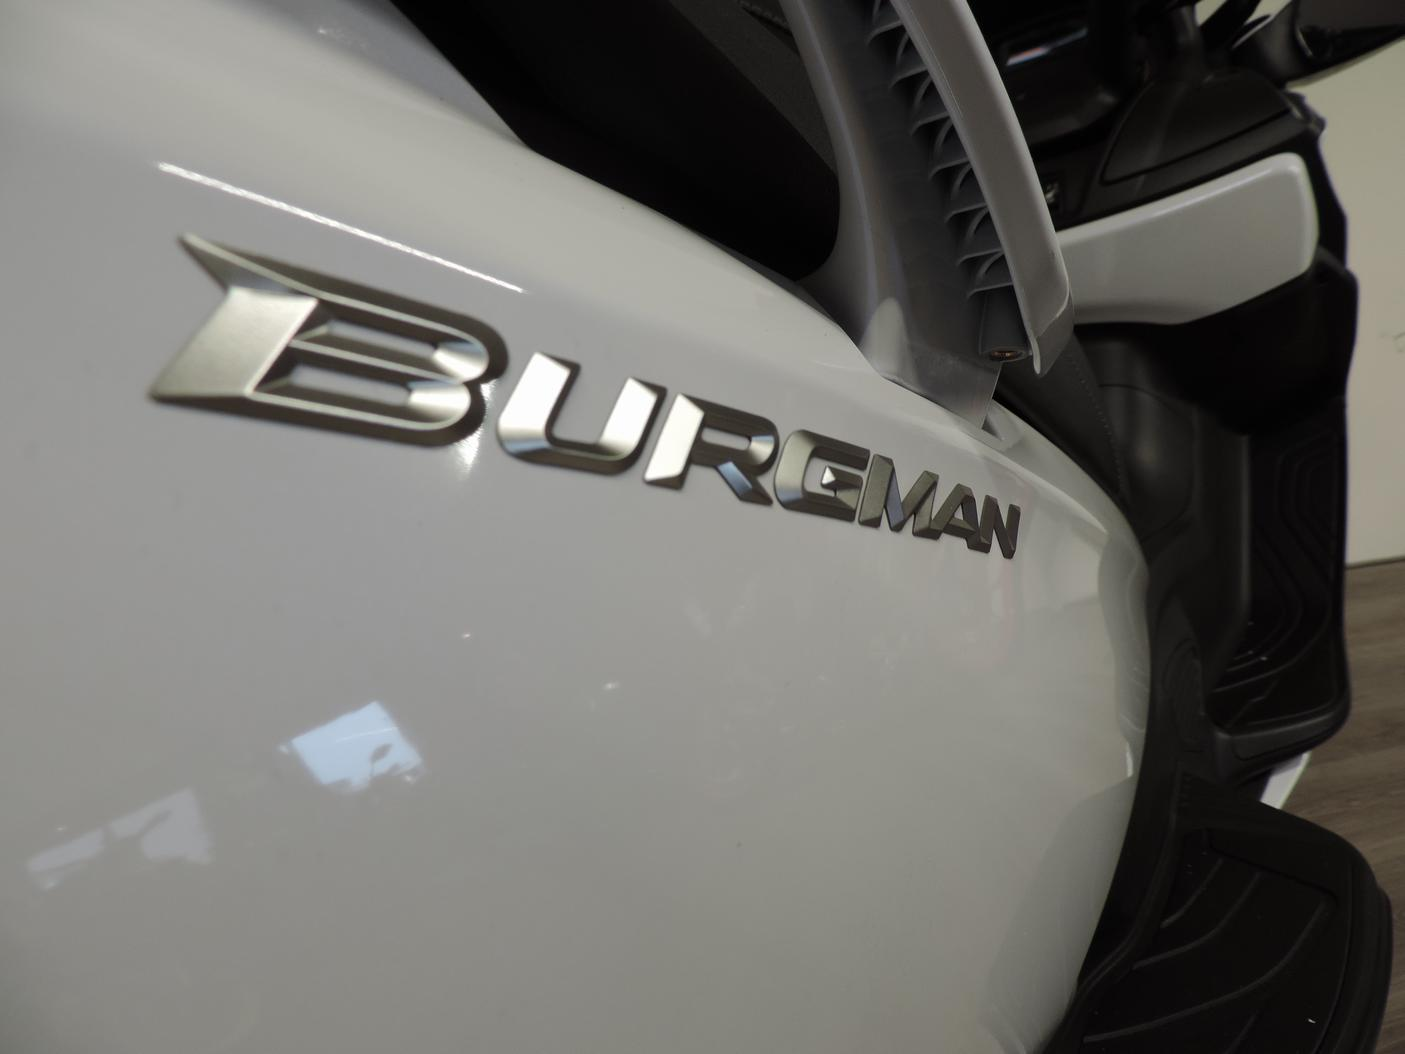 SUZUKI - BURGMAN 650 ABS EXECUTIVE